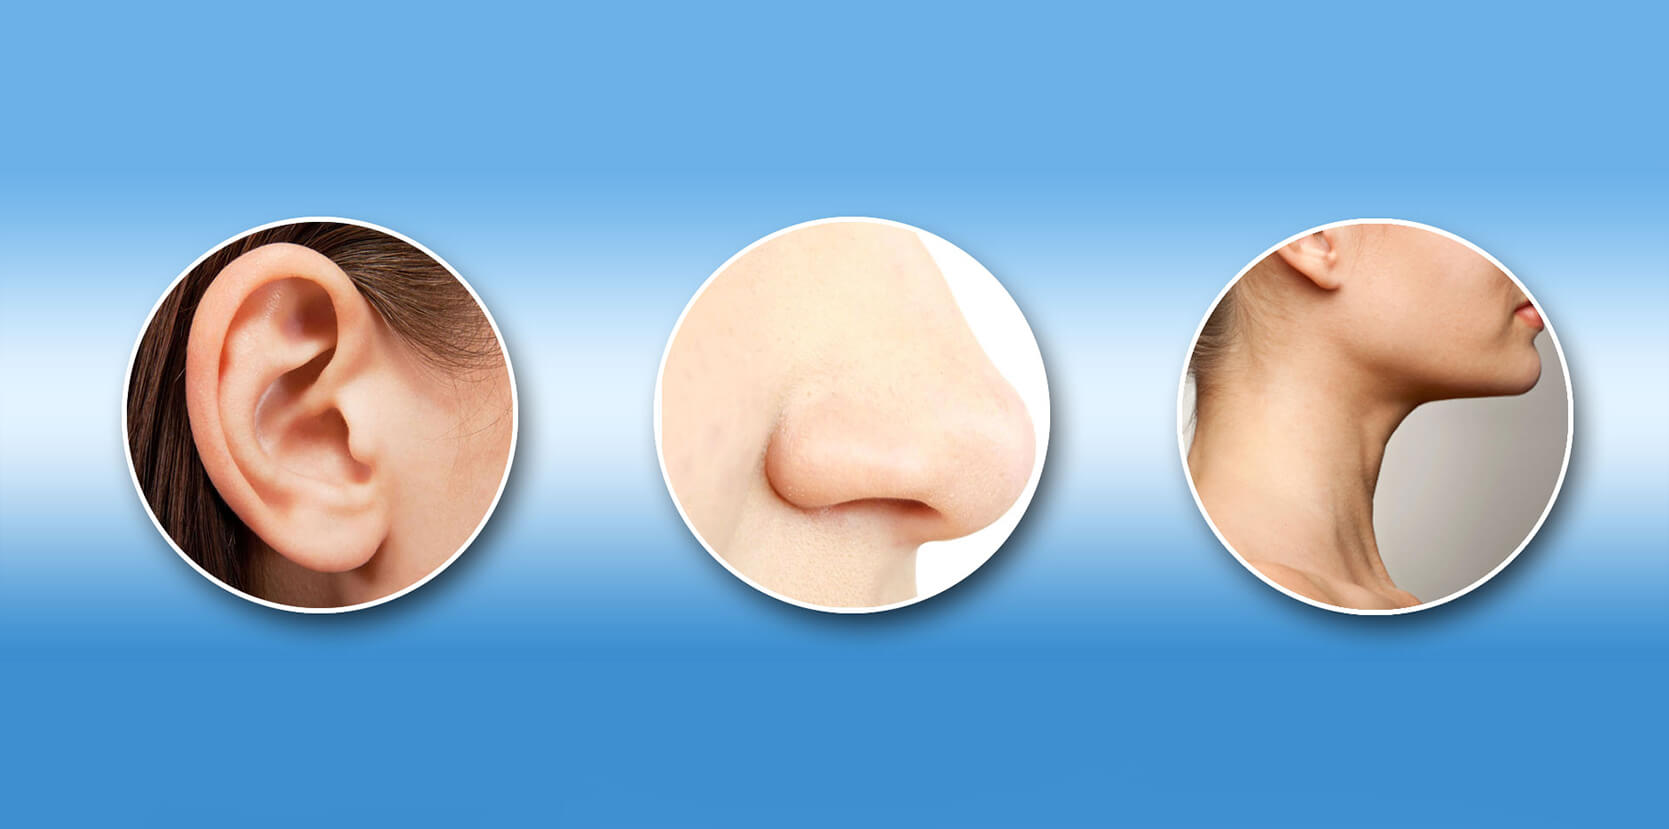 basic information on common disorders of the ear, nose and throat